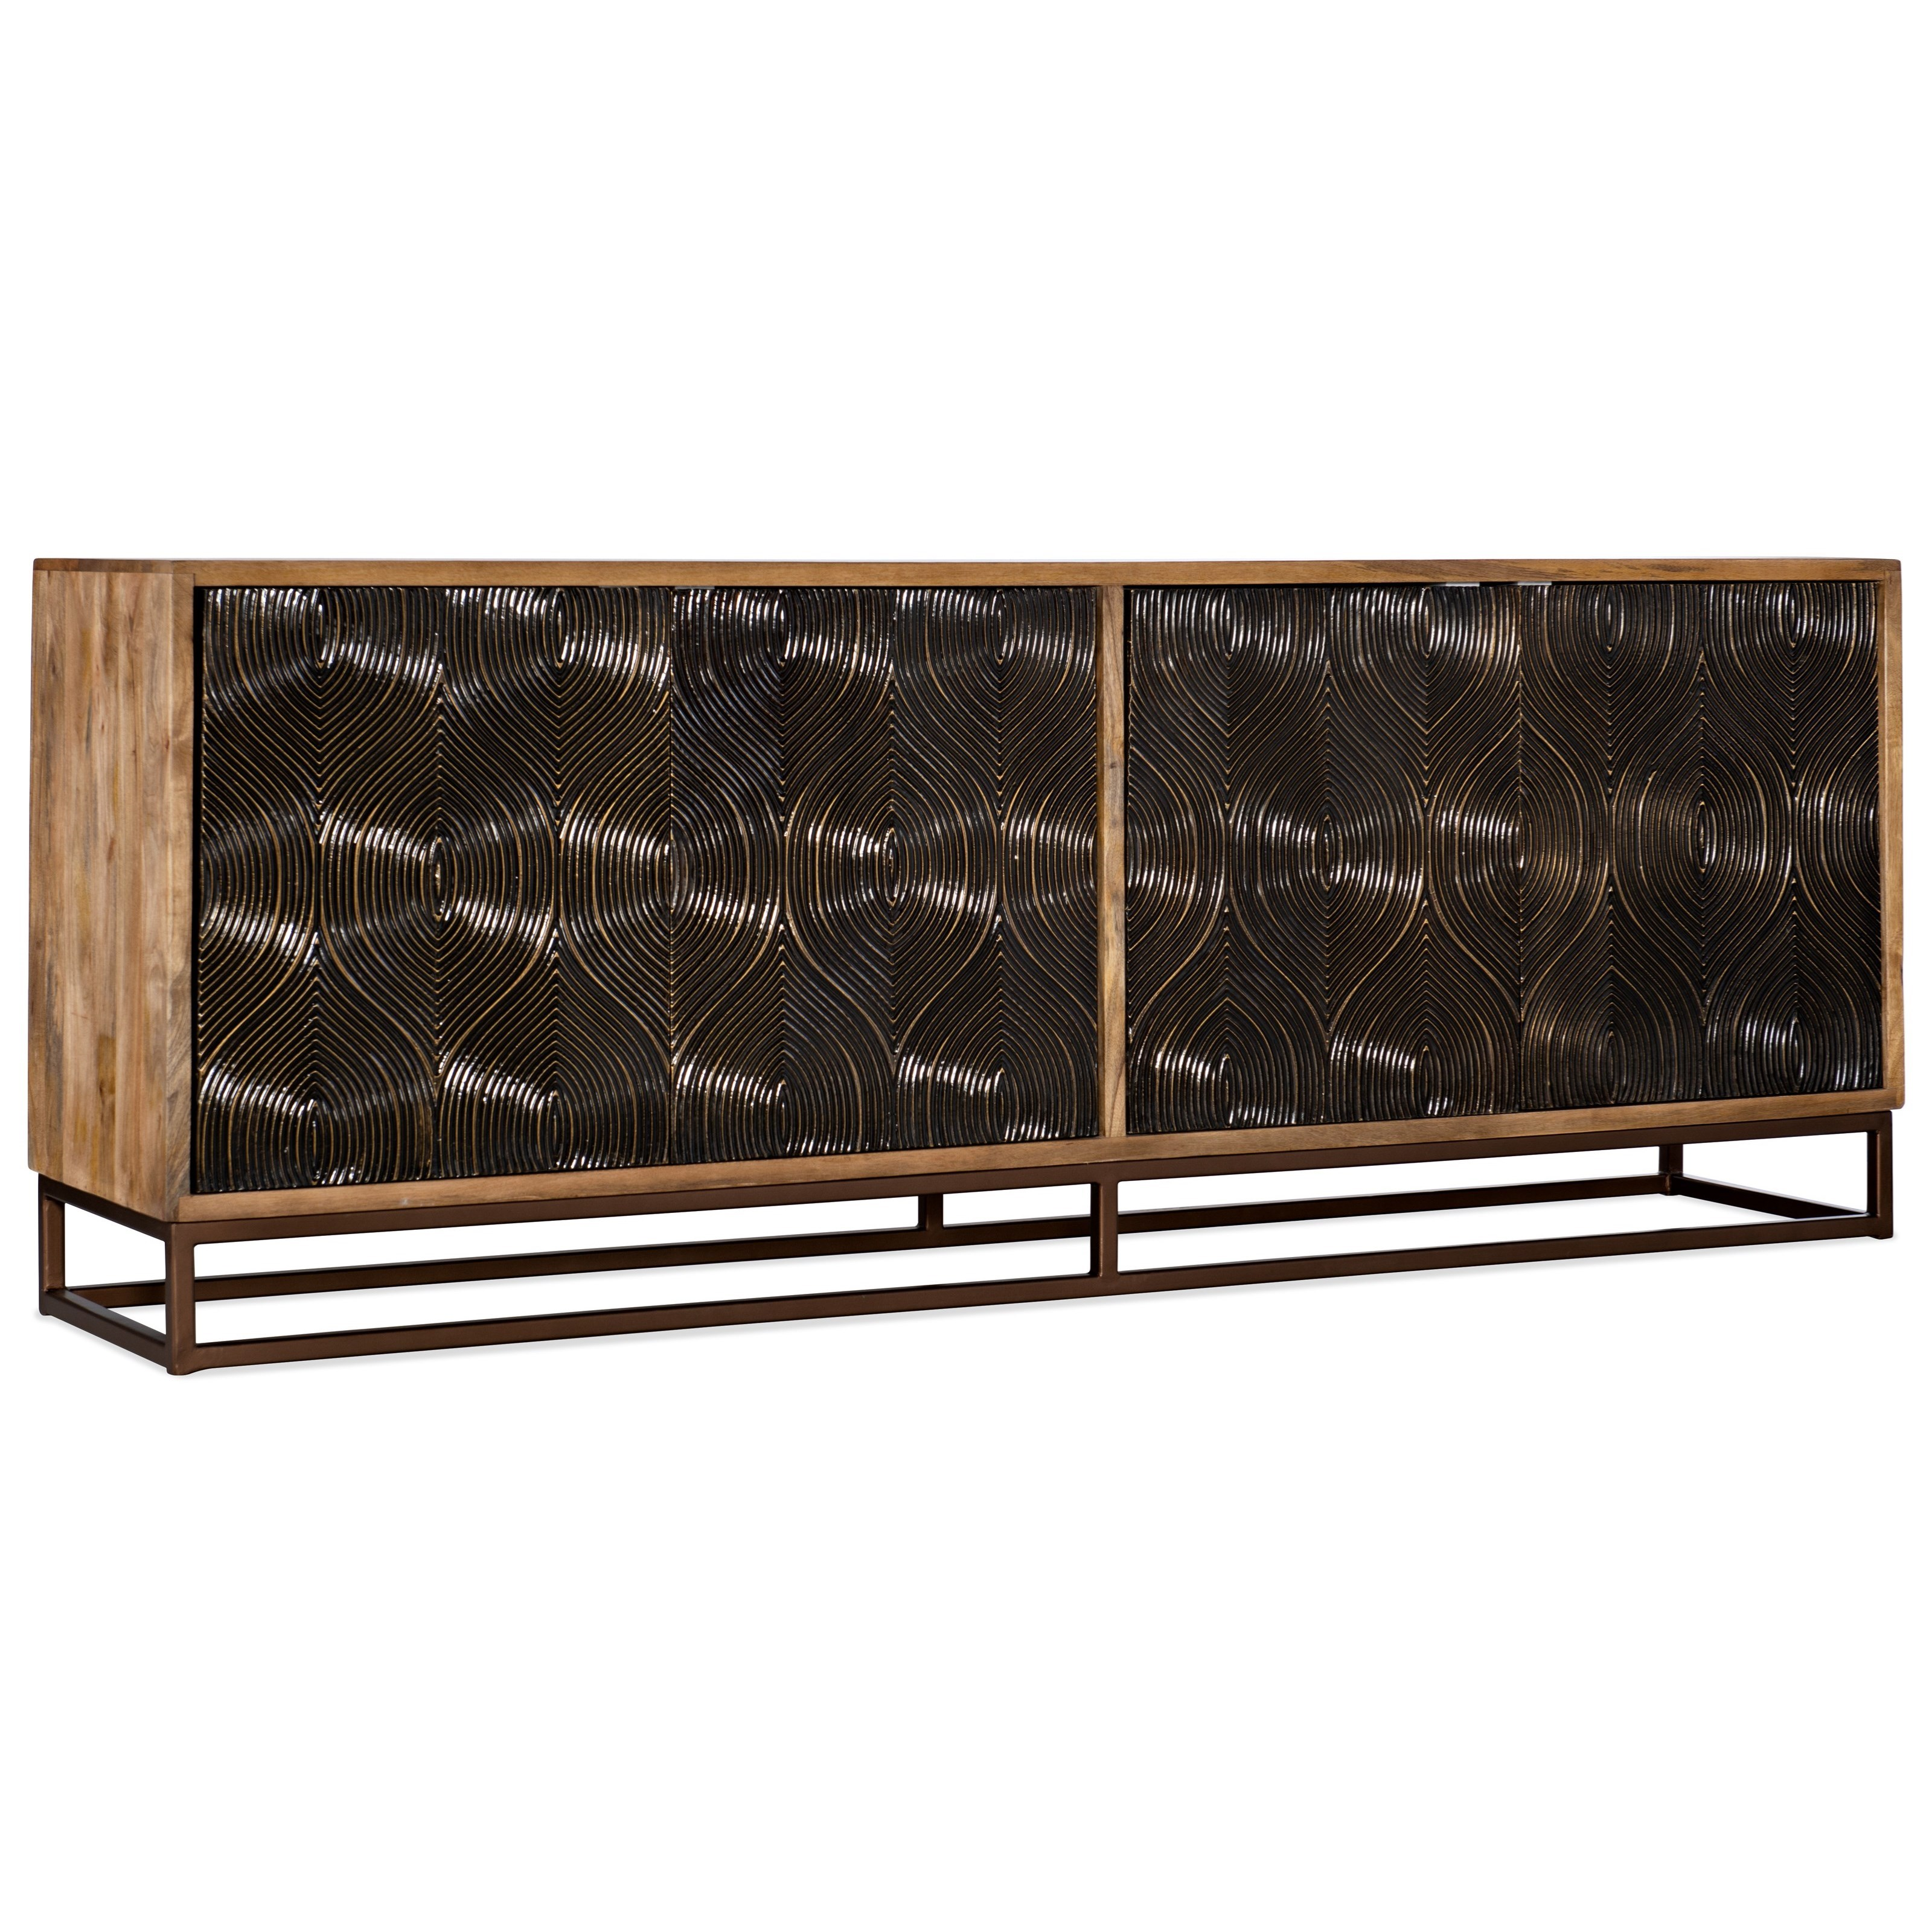 Living Room Accents Swirl Door Entertainment Console by Hooker Furniture at Alison Craig Home Furnishings